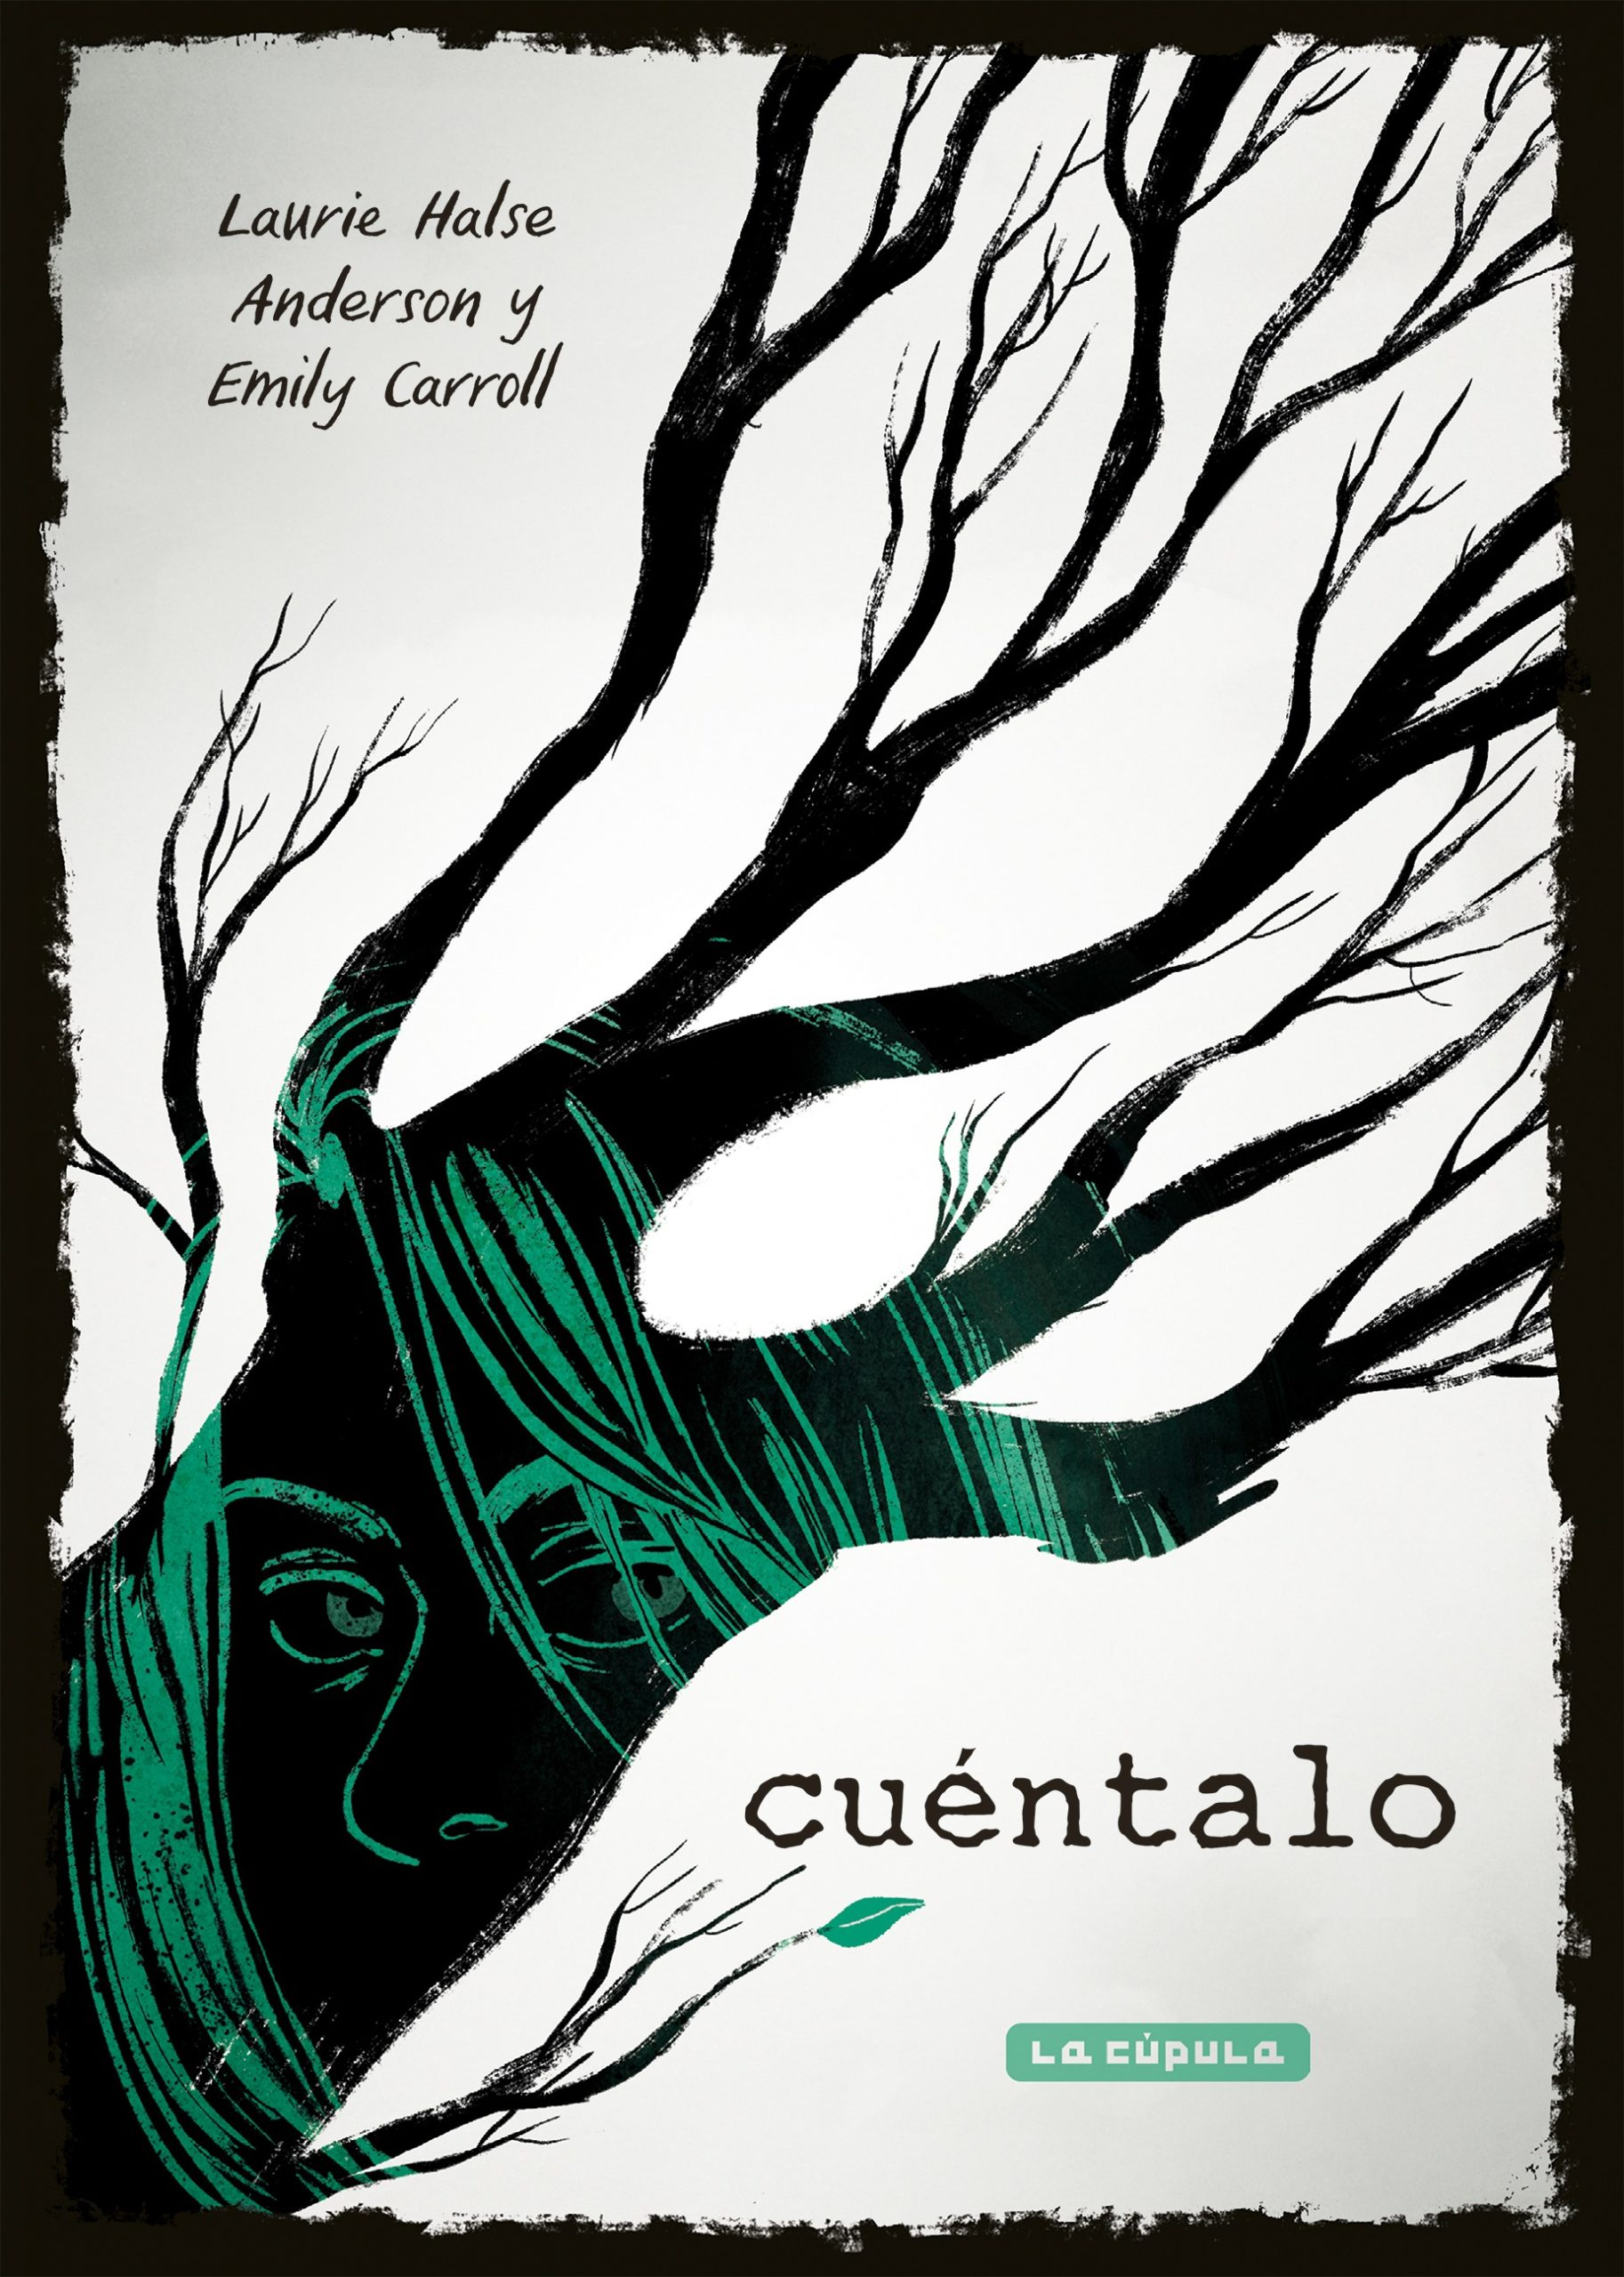 Emily Carroll y Laurie Halse Anderson Cuentalo Cubierta scaled